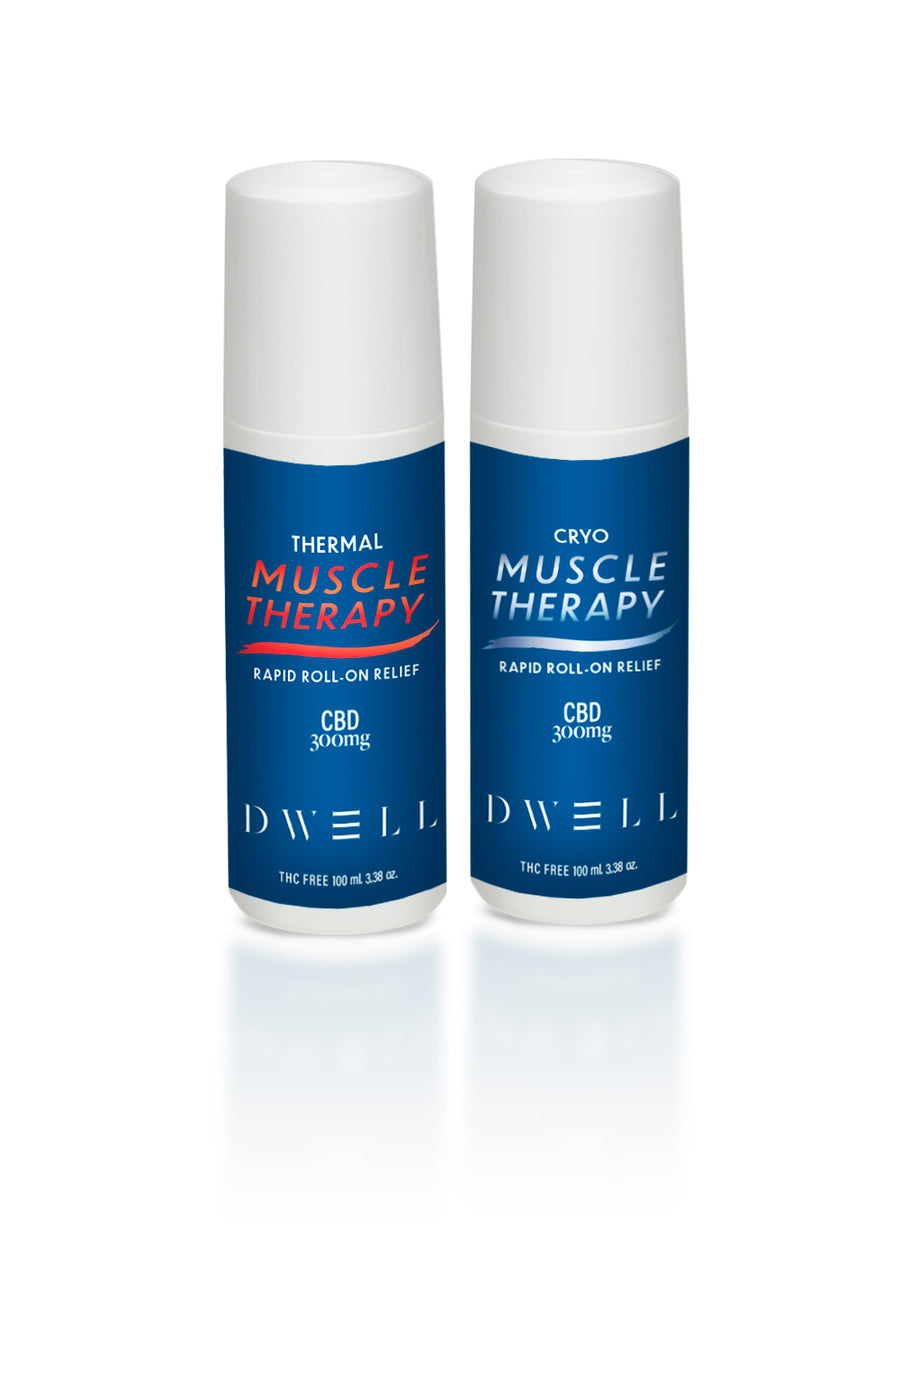 CBD roll-on muscle therapy